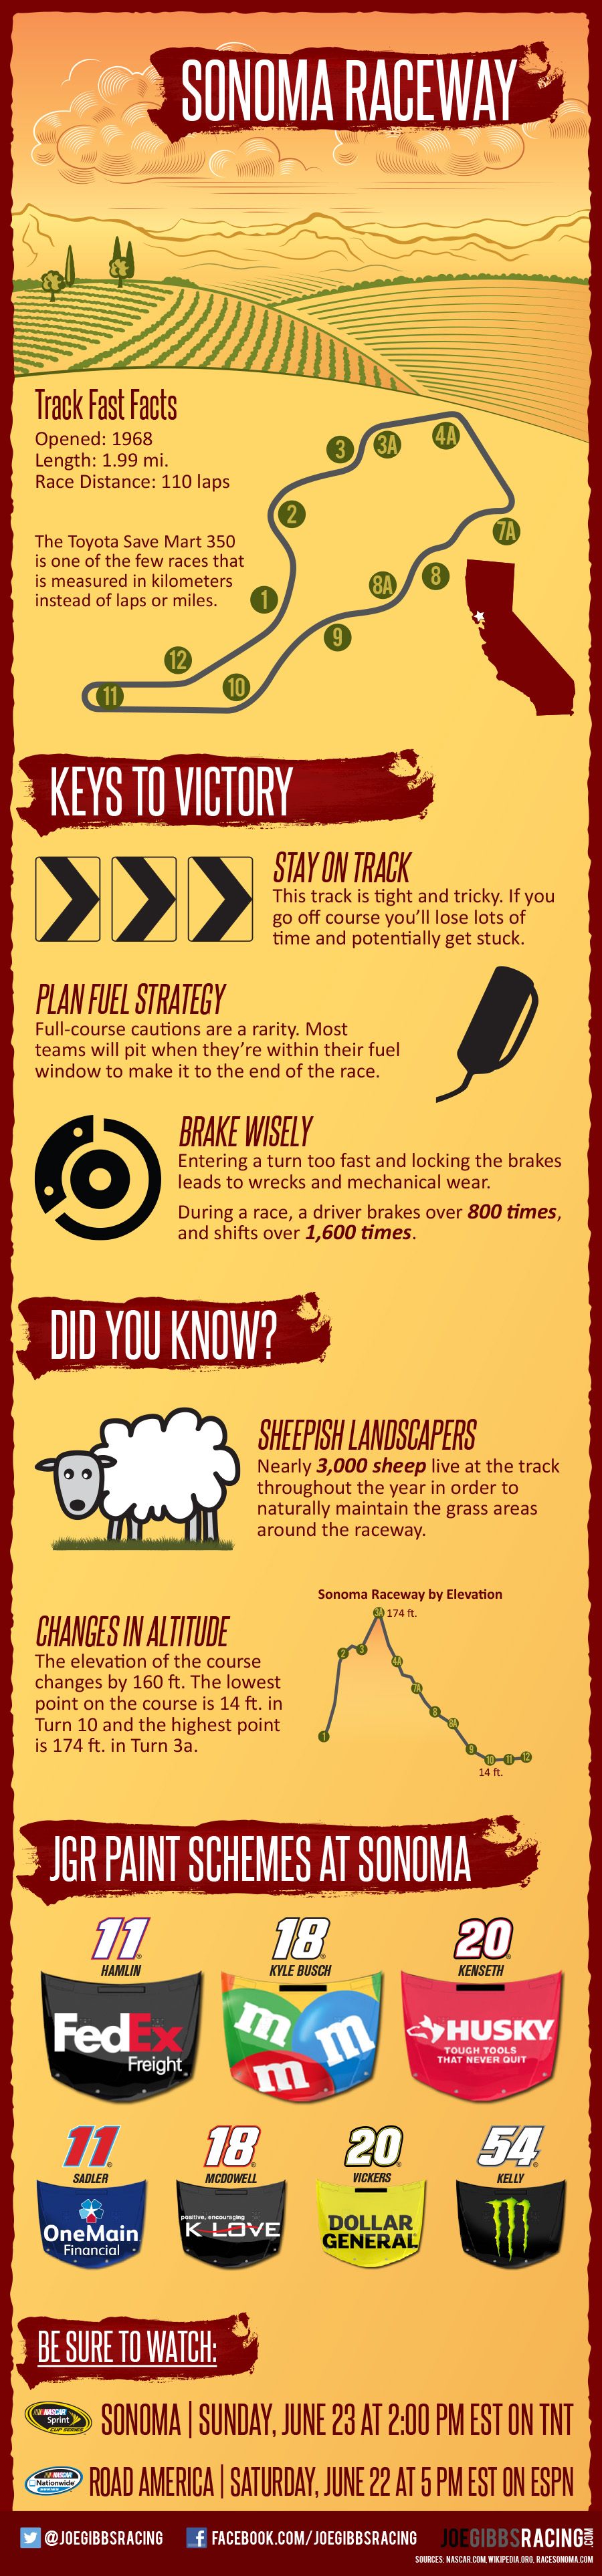 Joe Gibbs Racing Sonoma Raceway Infographic. Zippertravel